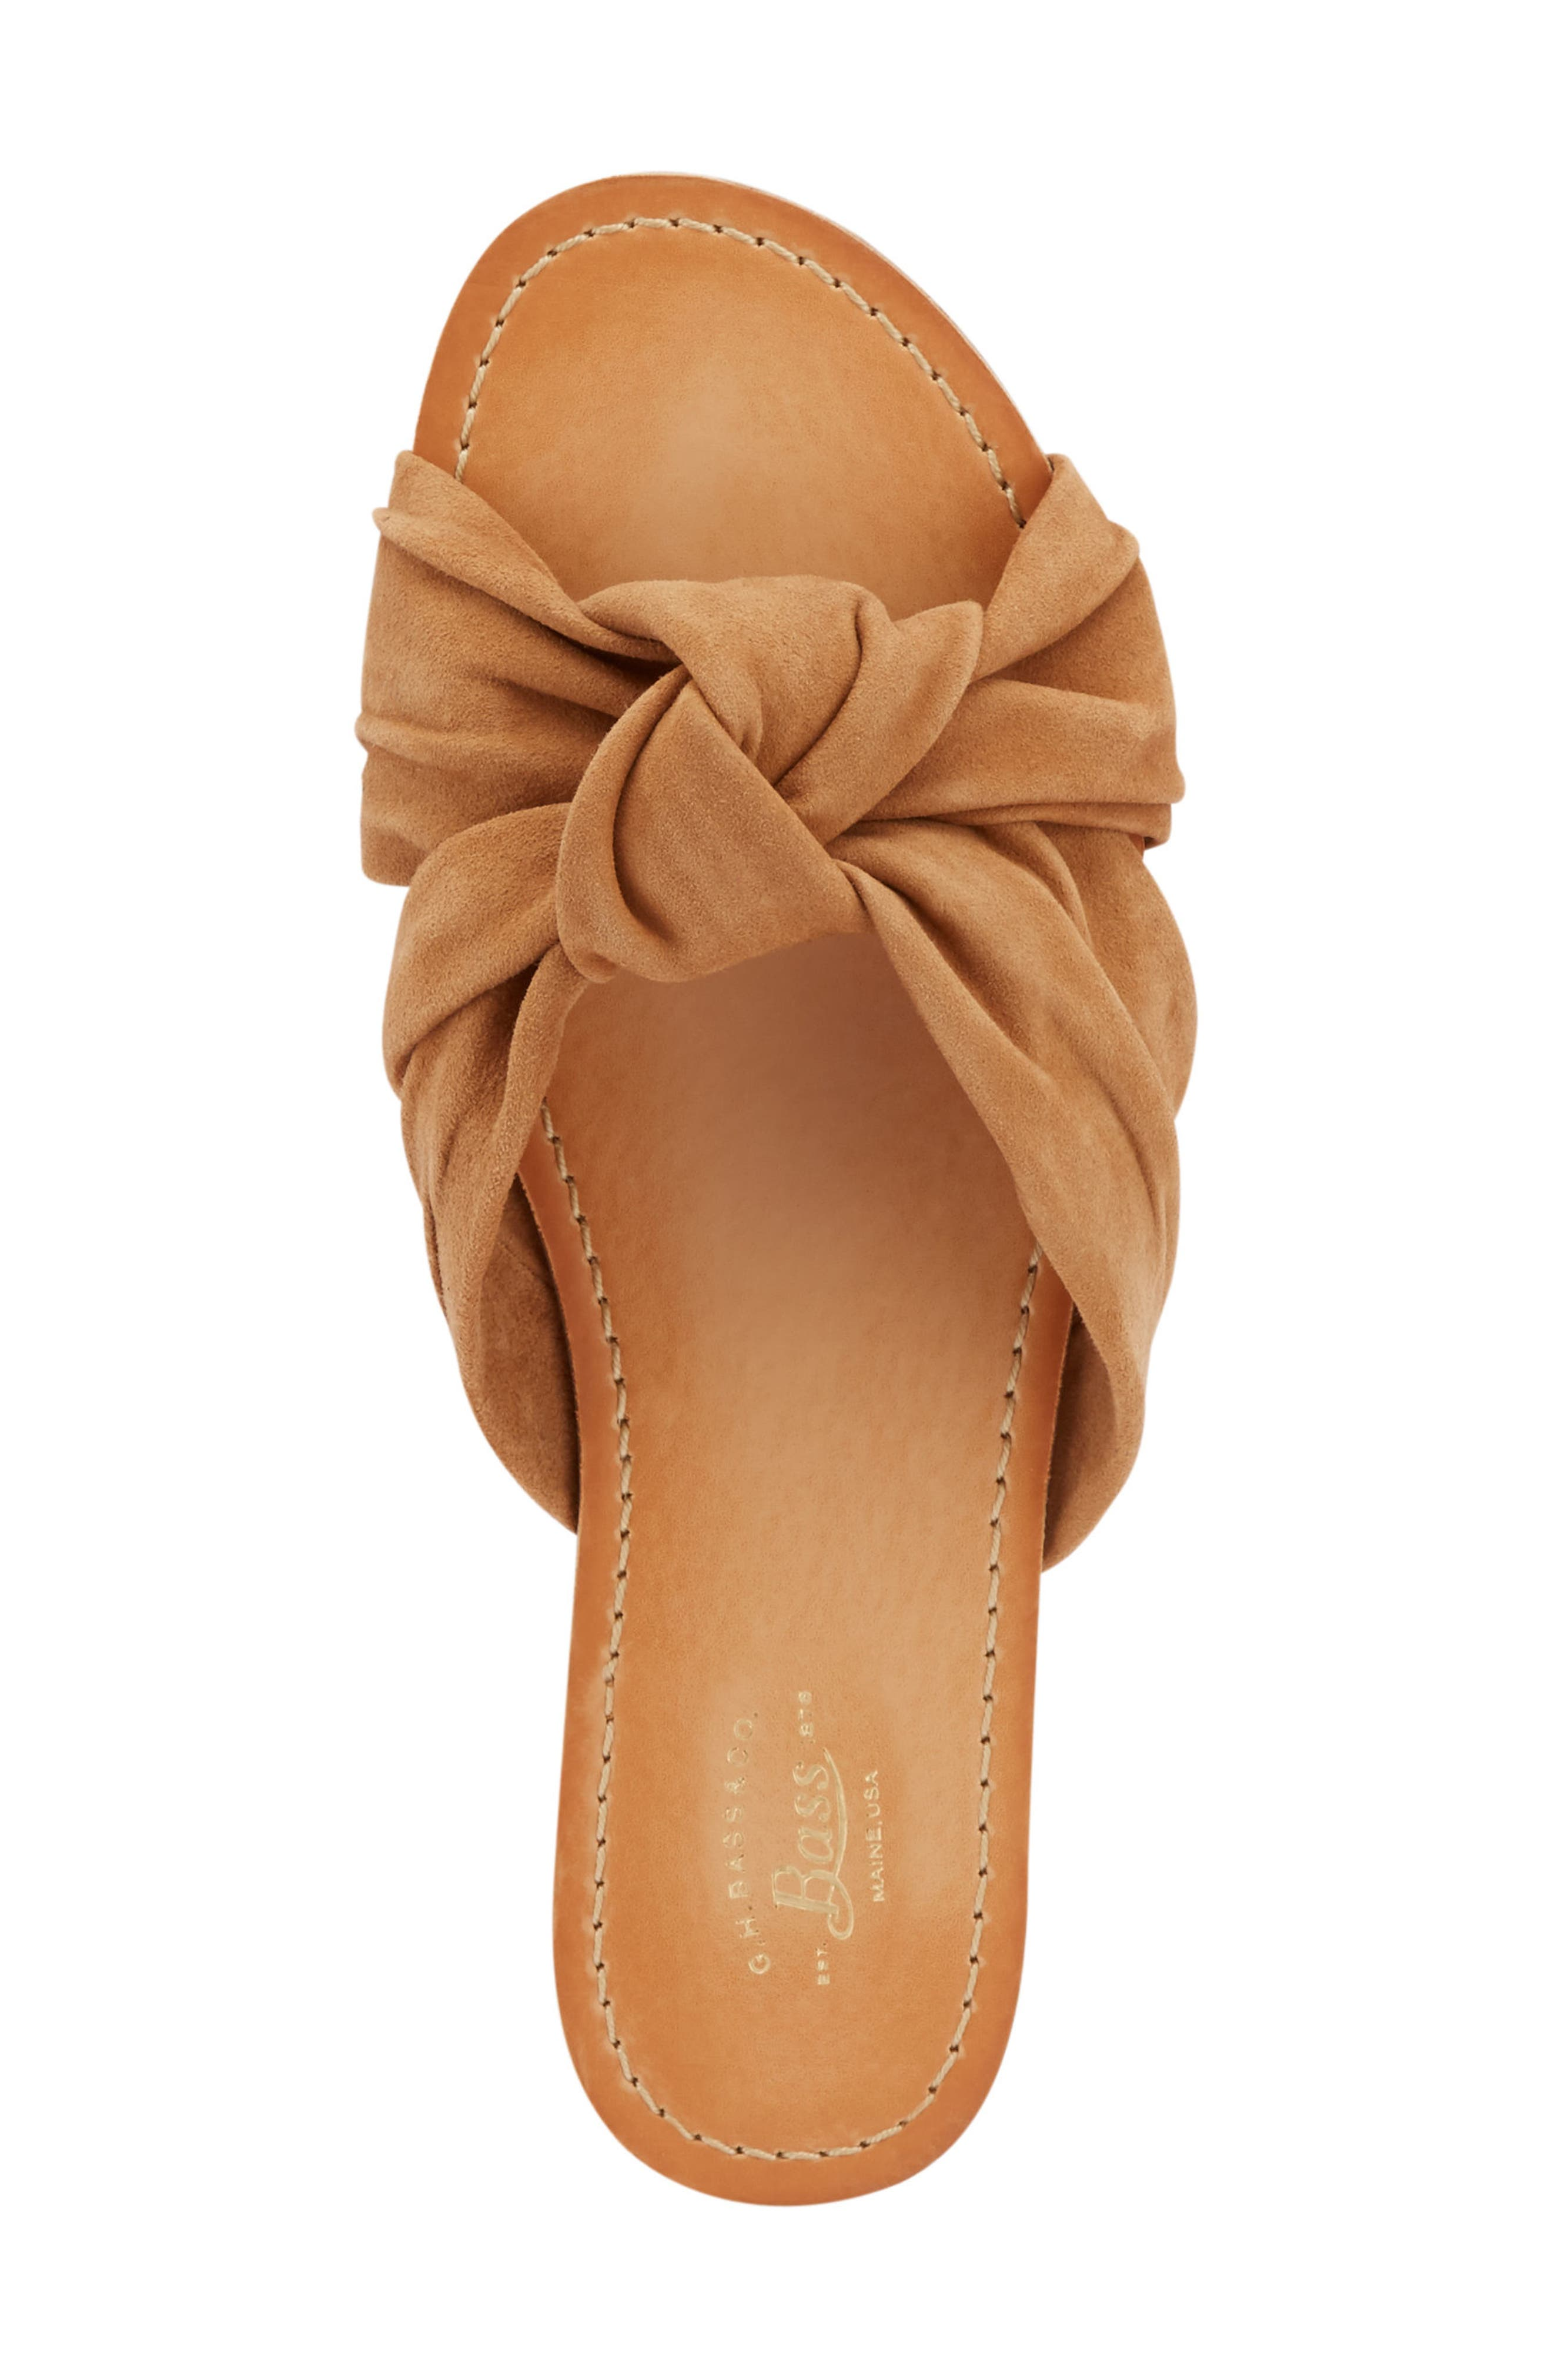 Sophie Knotted Bow Sandal,                             Alternate thumbnail 5, color,                             TAN SUEDE